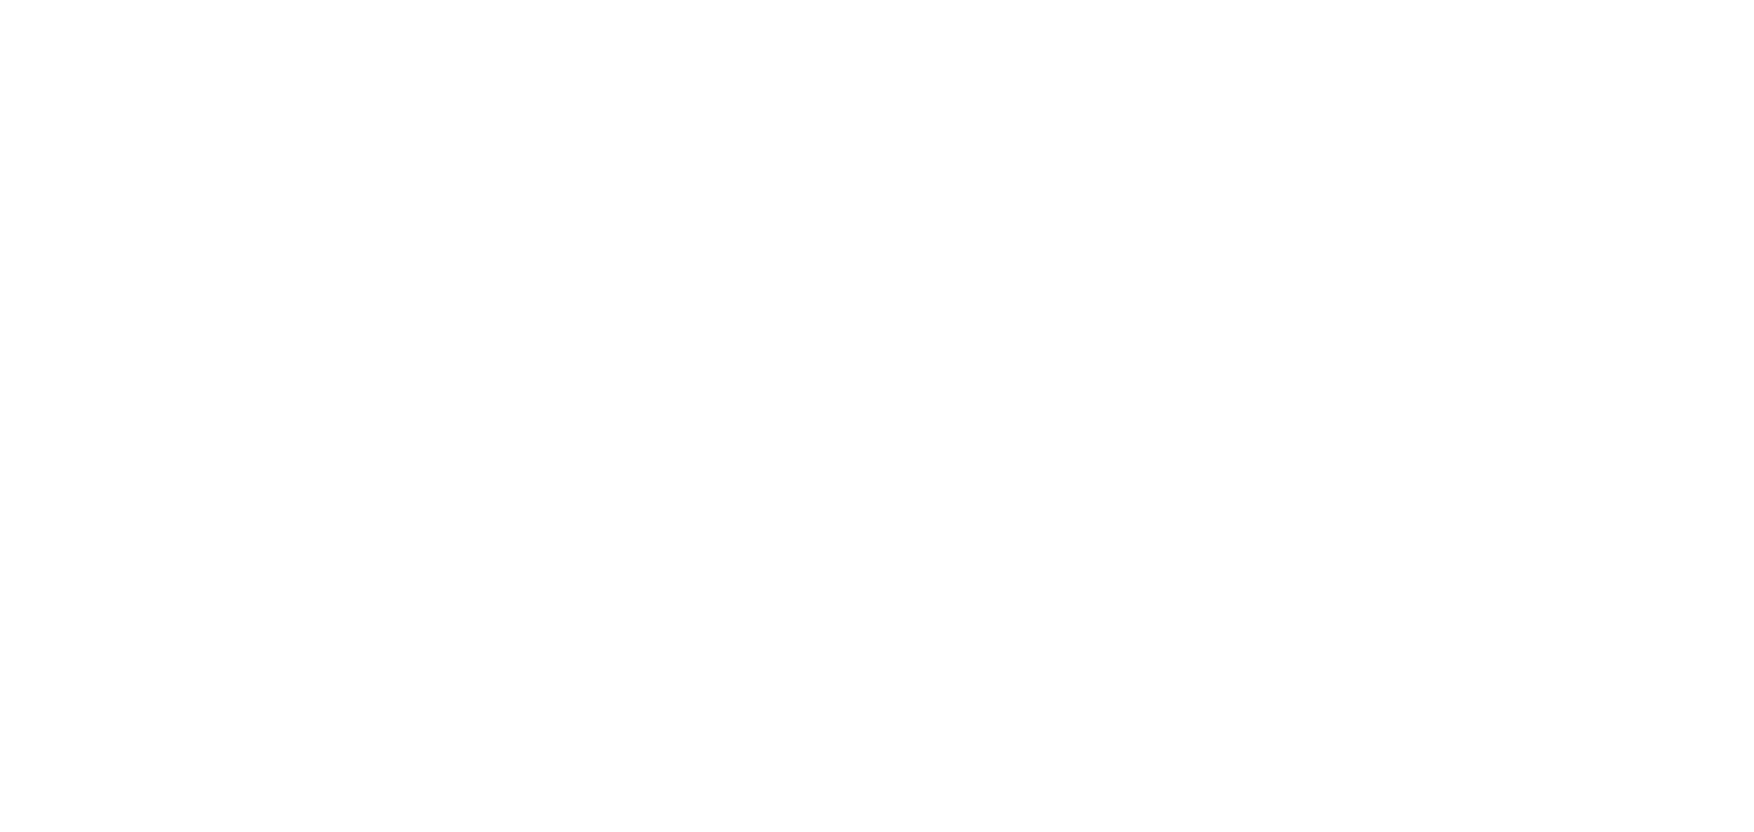 Above and Beyond Building Contractors